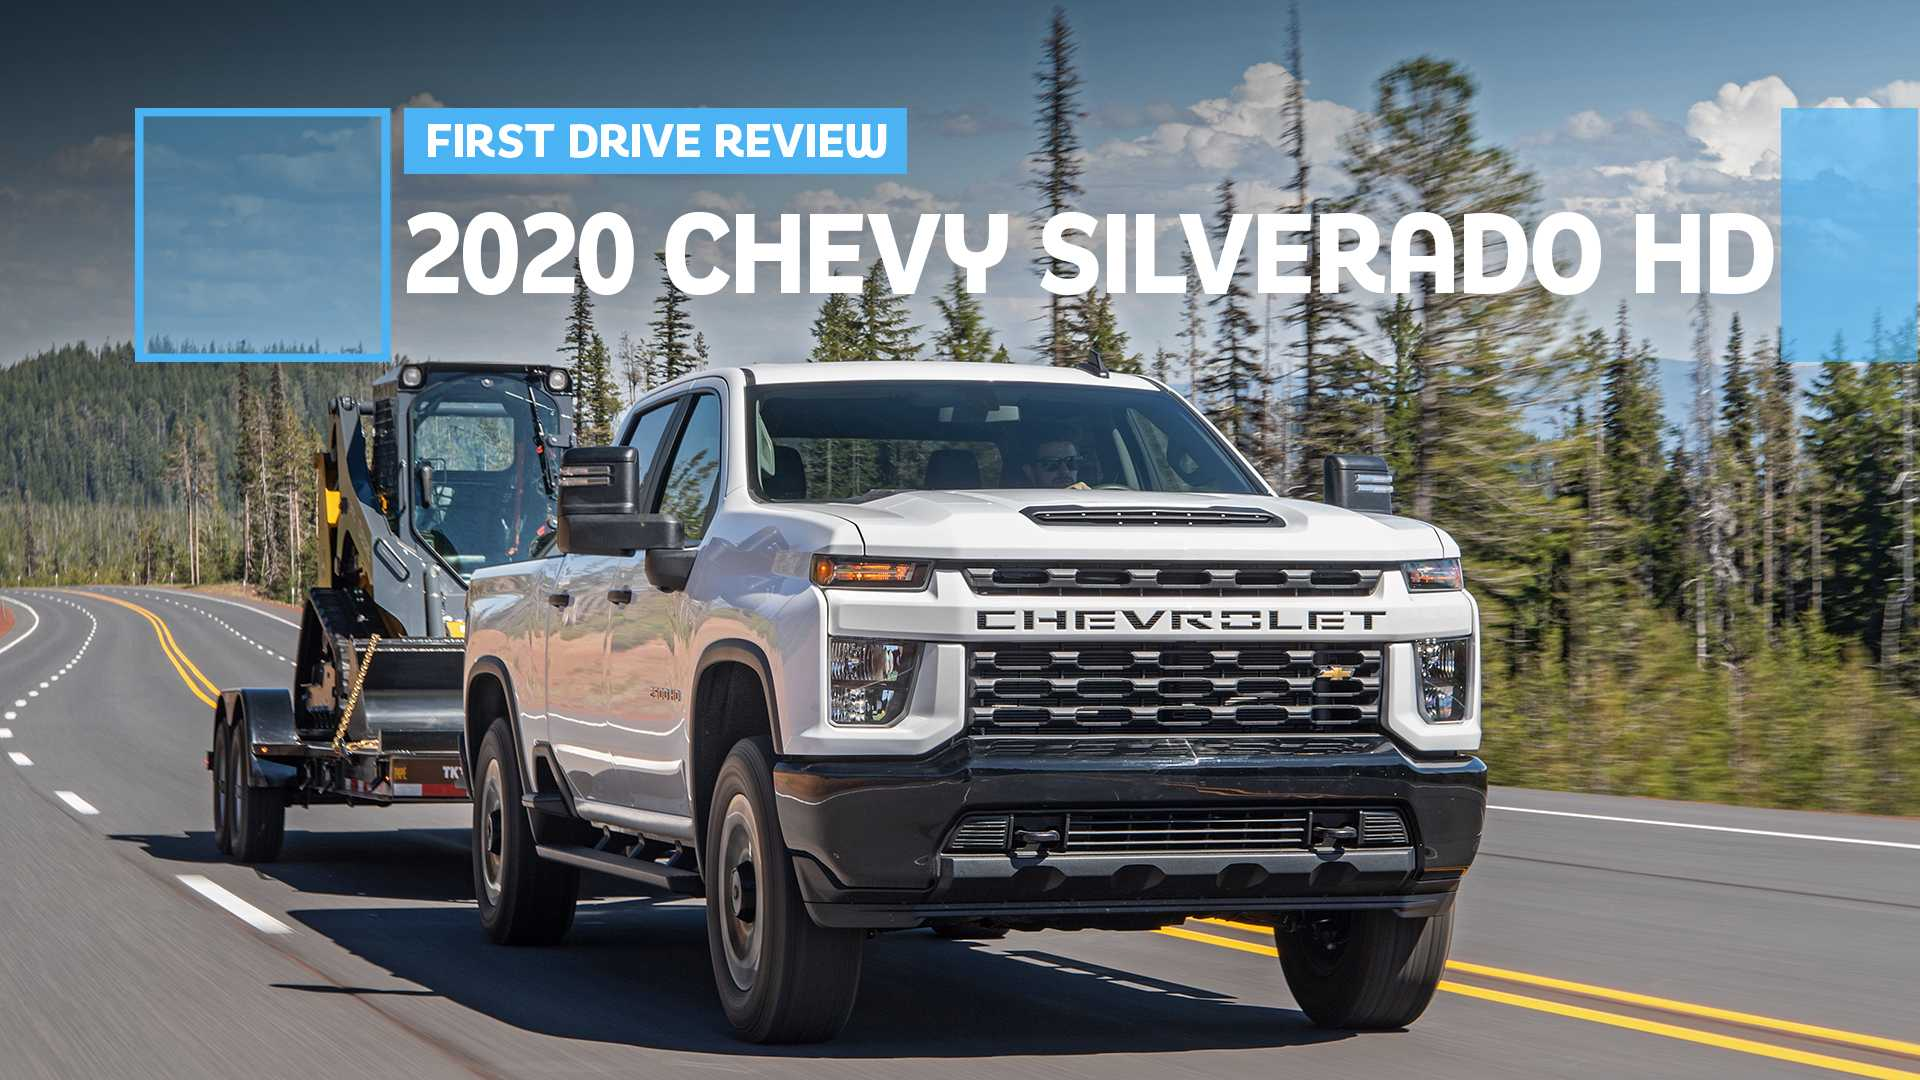 2020 Chevrolet Silverado Hd First Drive Punishing